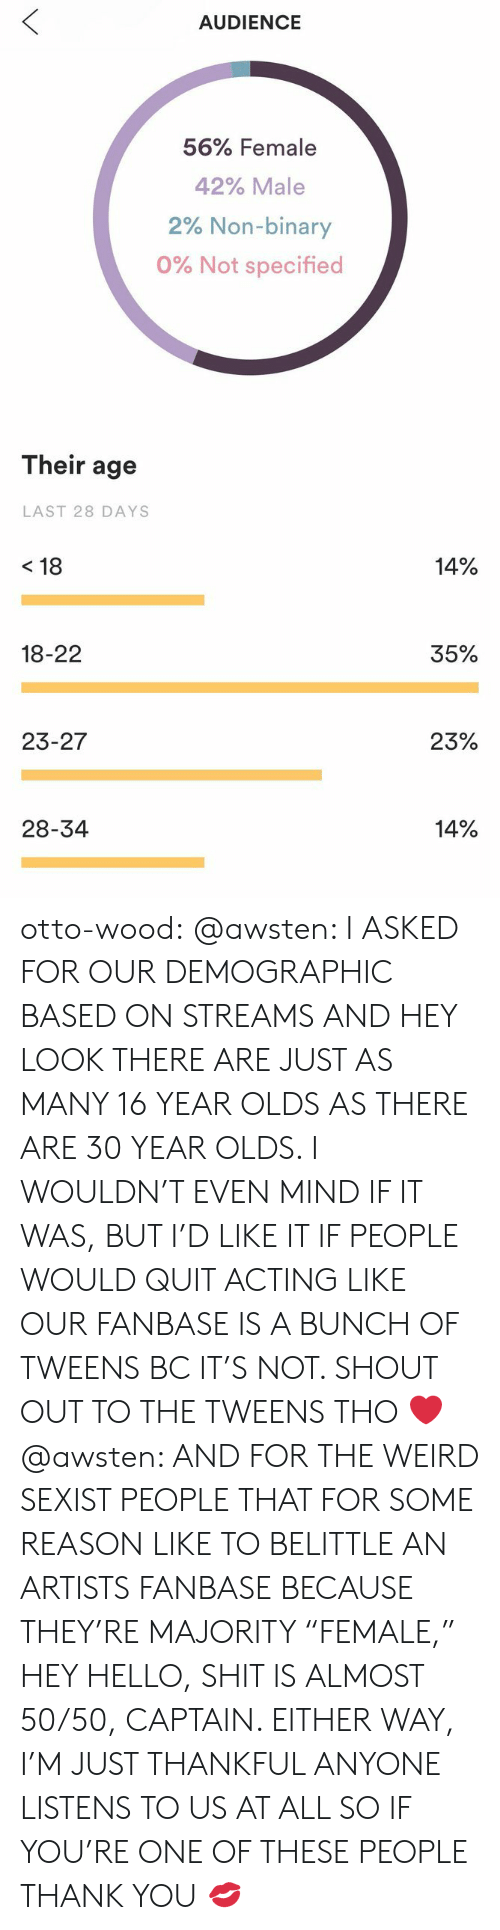 "Hello, Shit, and Tumblr: AUDIENCE  56% Female  42% Male  2% Non-binary  0% Not specified  Their age  LAST 28 DAYS  <18  14%  18-22  35%  23-27  23%  28-34  14% otto-wood:  @awsten: I ASKED FOR OUR DEMOGRAPHIC BASED ON STREAMS AND HEY LOOK THERE ARE JUST AS MANY 16 YEAR OLDS AS THERE ARE 30 YEAR OLDS. I WOULDN'T EVEN MIND IF IT WAS, BUT I'D LIKE IT IF PEOPLE WOULD QUIT ACTING LIKE OUR FANBASE IS A BUNCH OF TWEENS BC IT'S NOT. SHOUT OUT TO THE TWEENS THO ❤️ @awsten: AND FOR THE WEIRD SEXIST PEOPLE THAT FOR SOME REASON LIKE TO BELITTLE AN ARTISTS FANBASE BECAUSE THEY'RE MAJORITY ""FEMALE,"" HEY HELLO, SHIT IS ALMOST 50/50, CAPTAIN.   EITHER WAY, I'M JUST THANKFUL ANYONE LISTENS TO US AT ALL SO IF YOU'RE ONE OF THESE PEOPLE THANK YOU 💋"